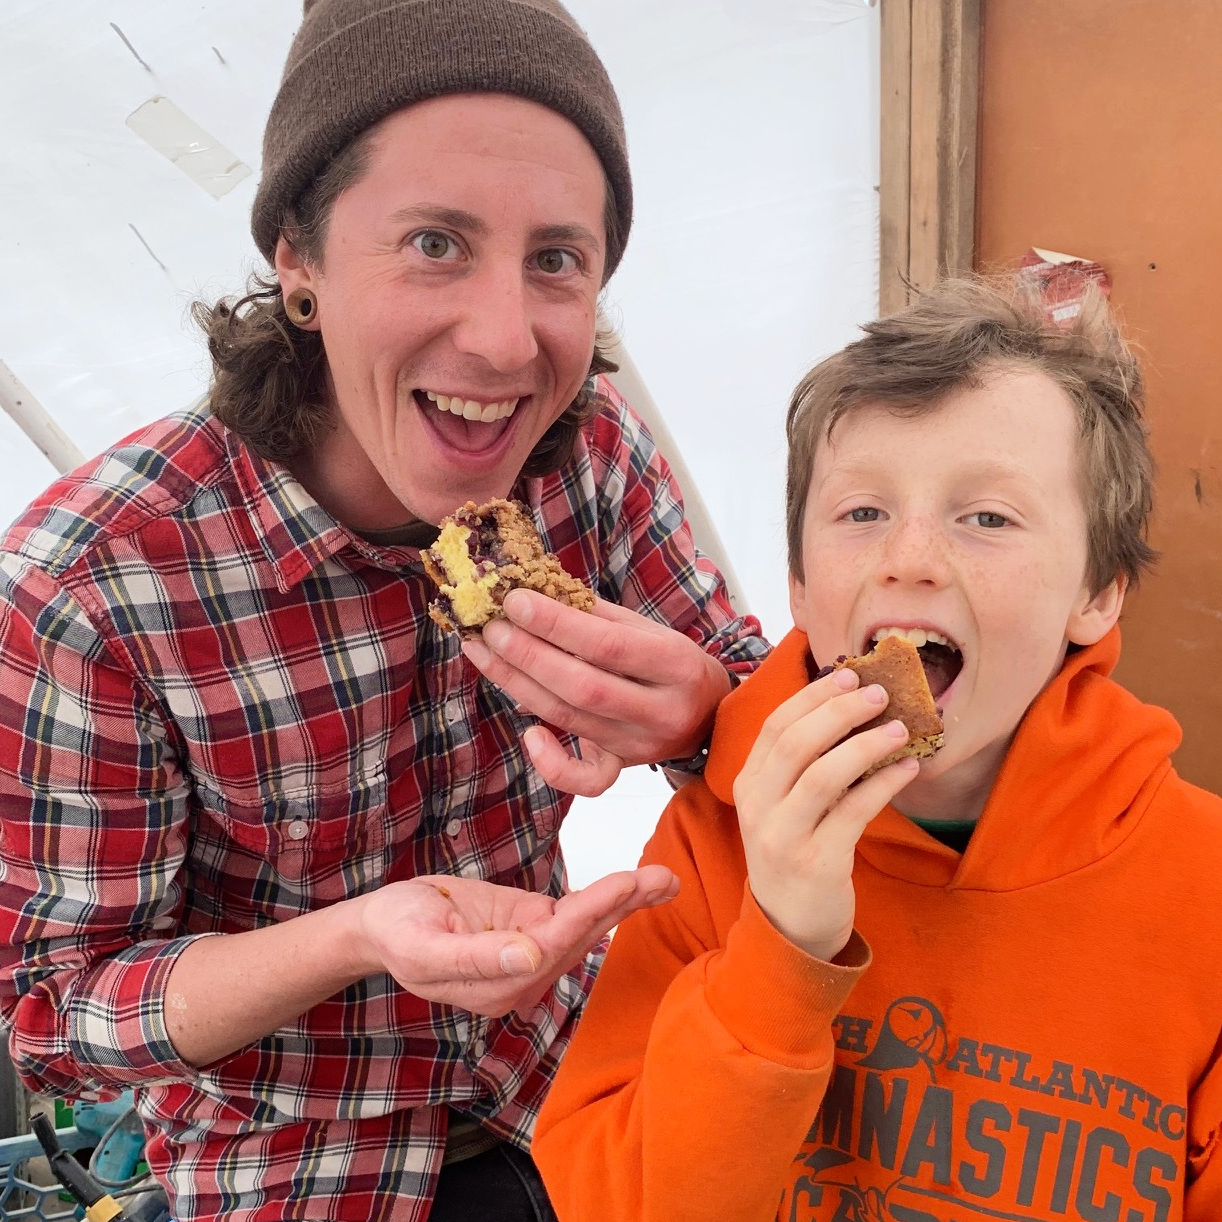 Deckhand Pepper and Oscar reaping the rewards. Yum!